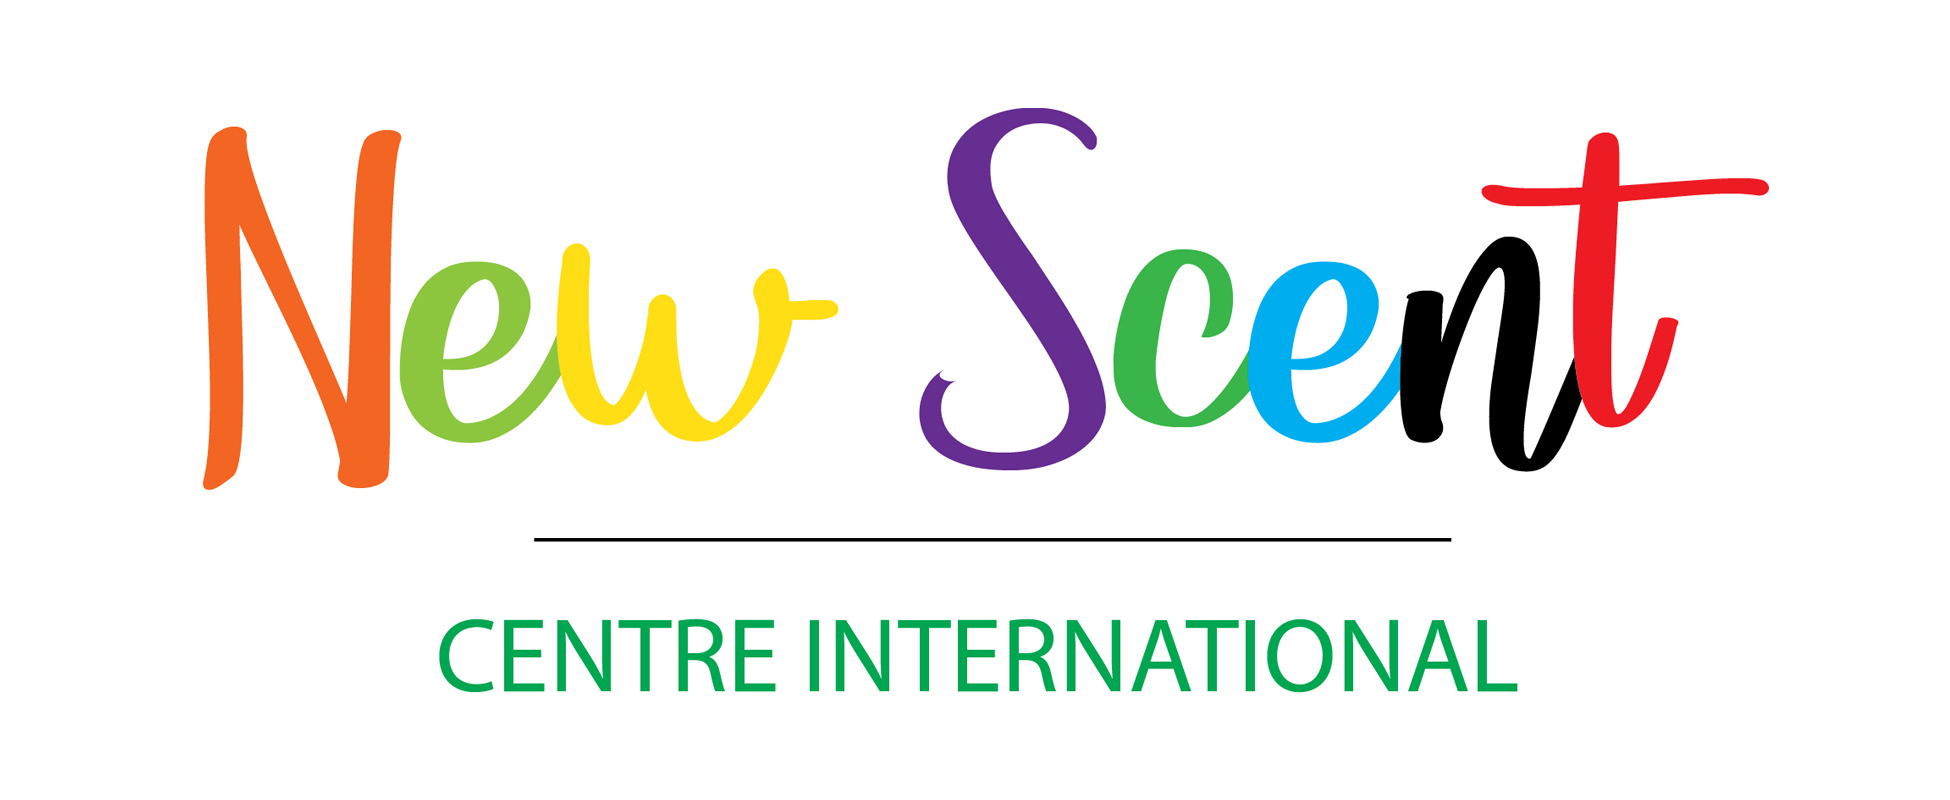 New Scent Centre International